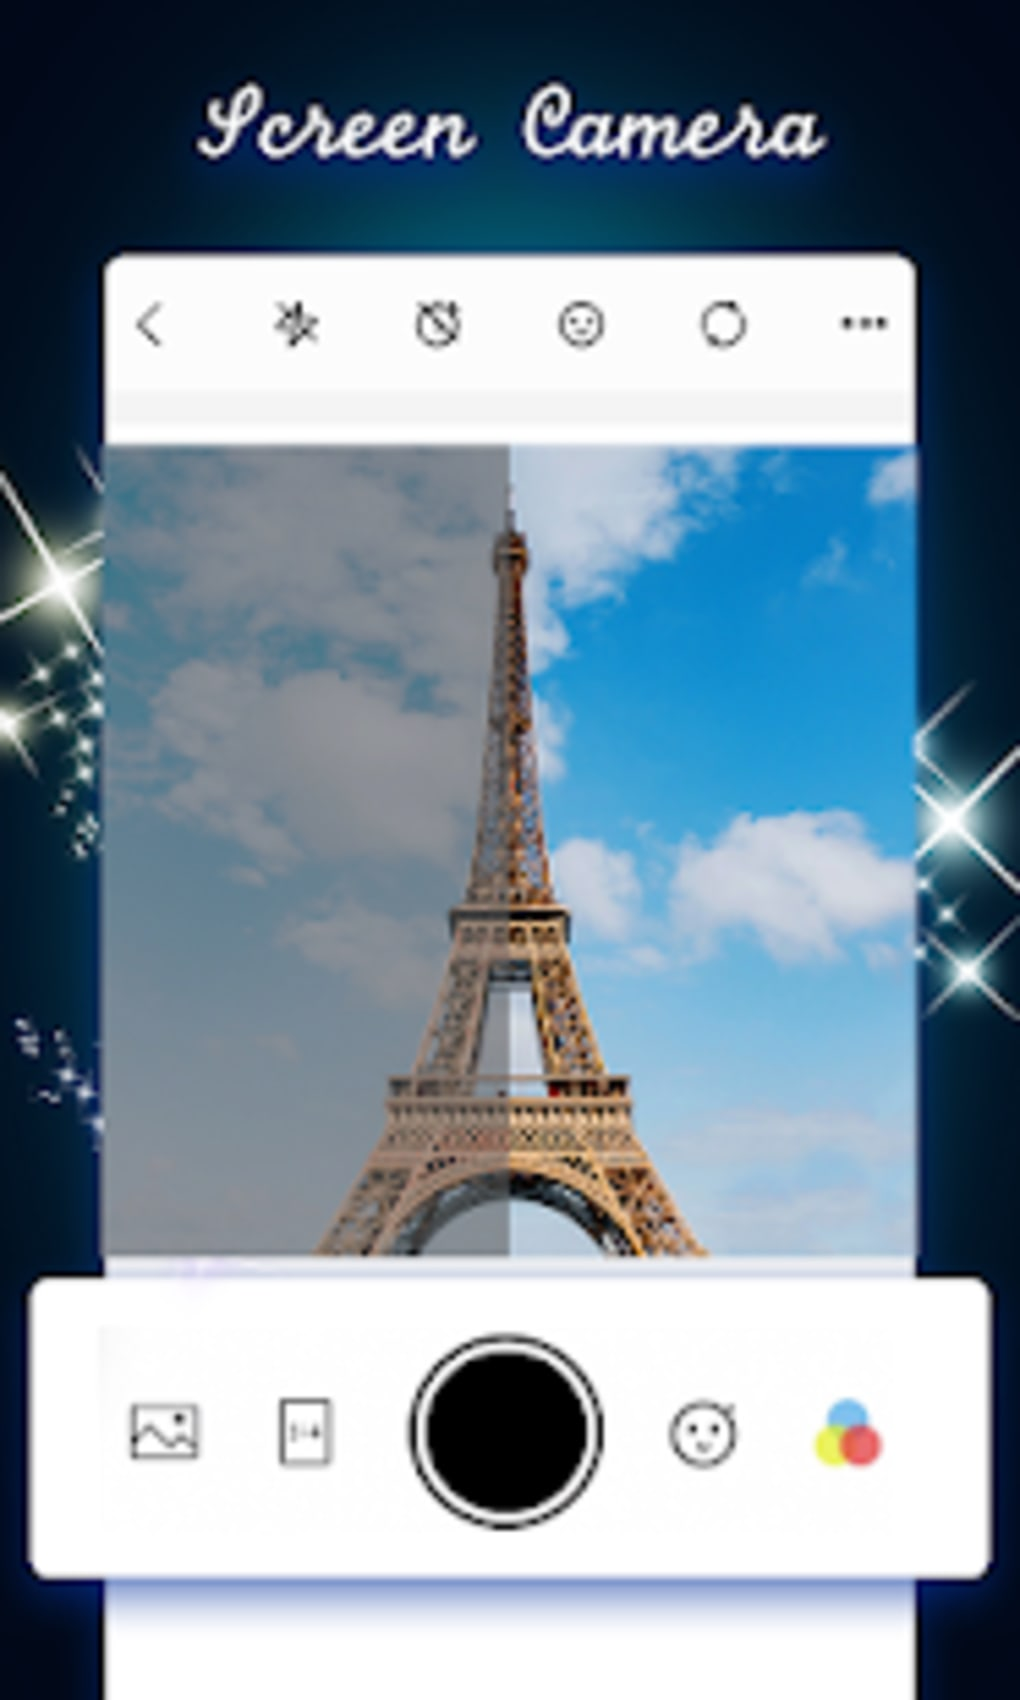 Square Blur - Magic Effect Blur Image Background for Android - Download